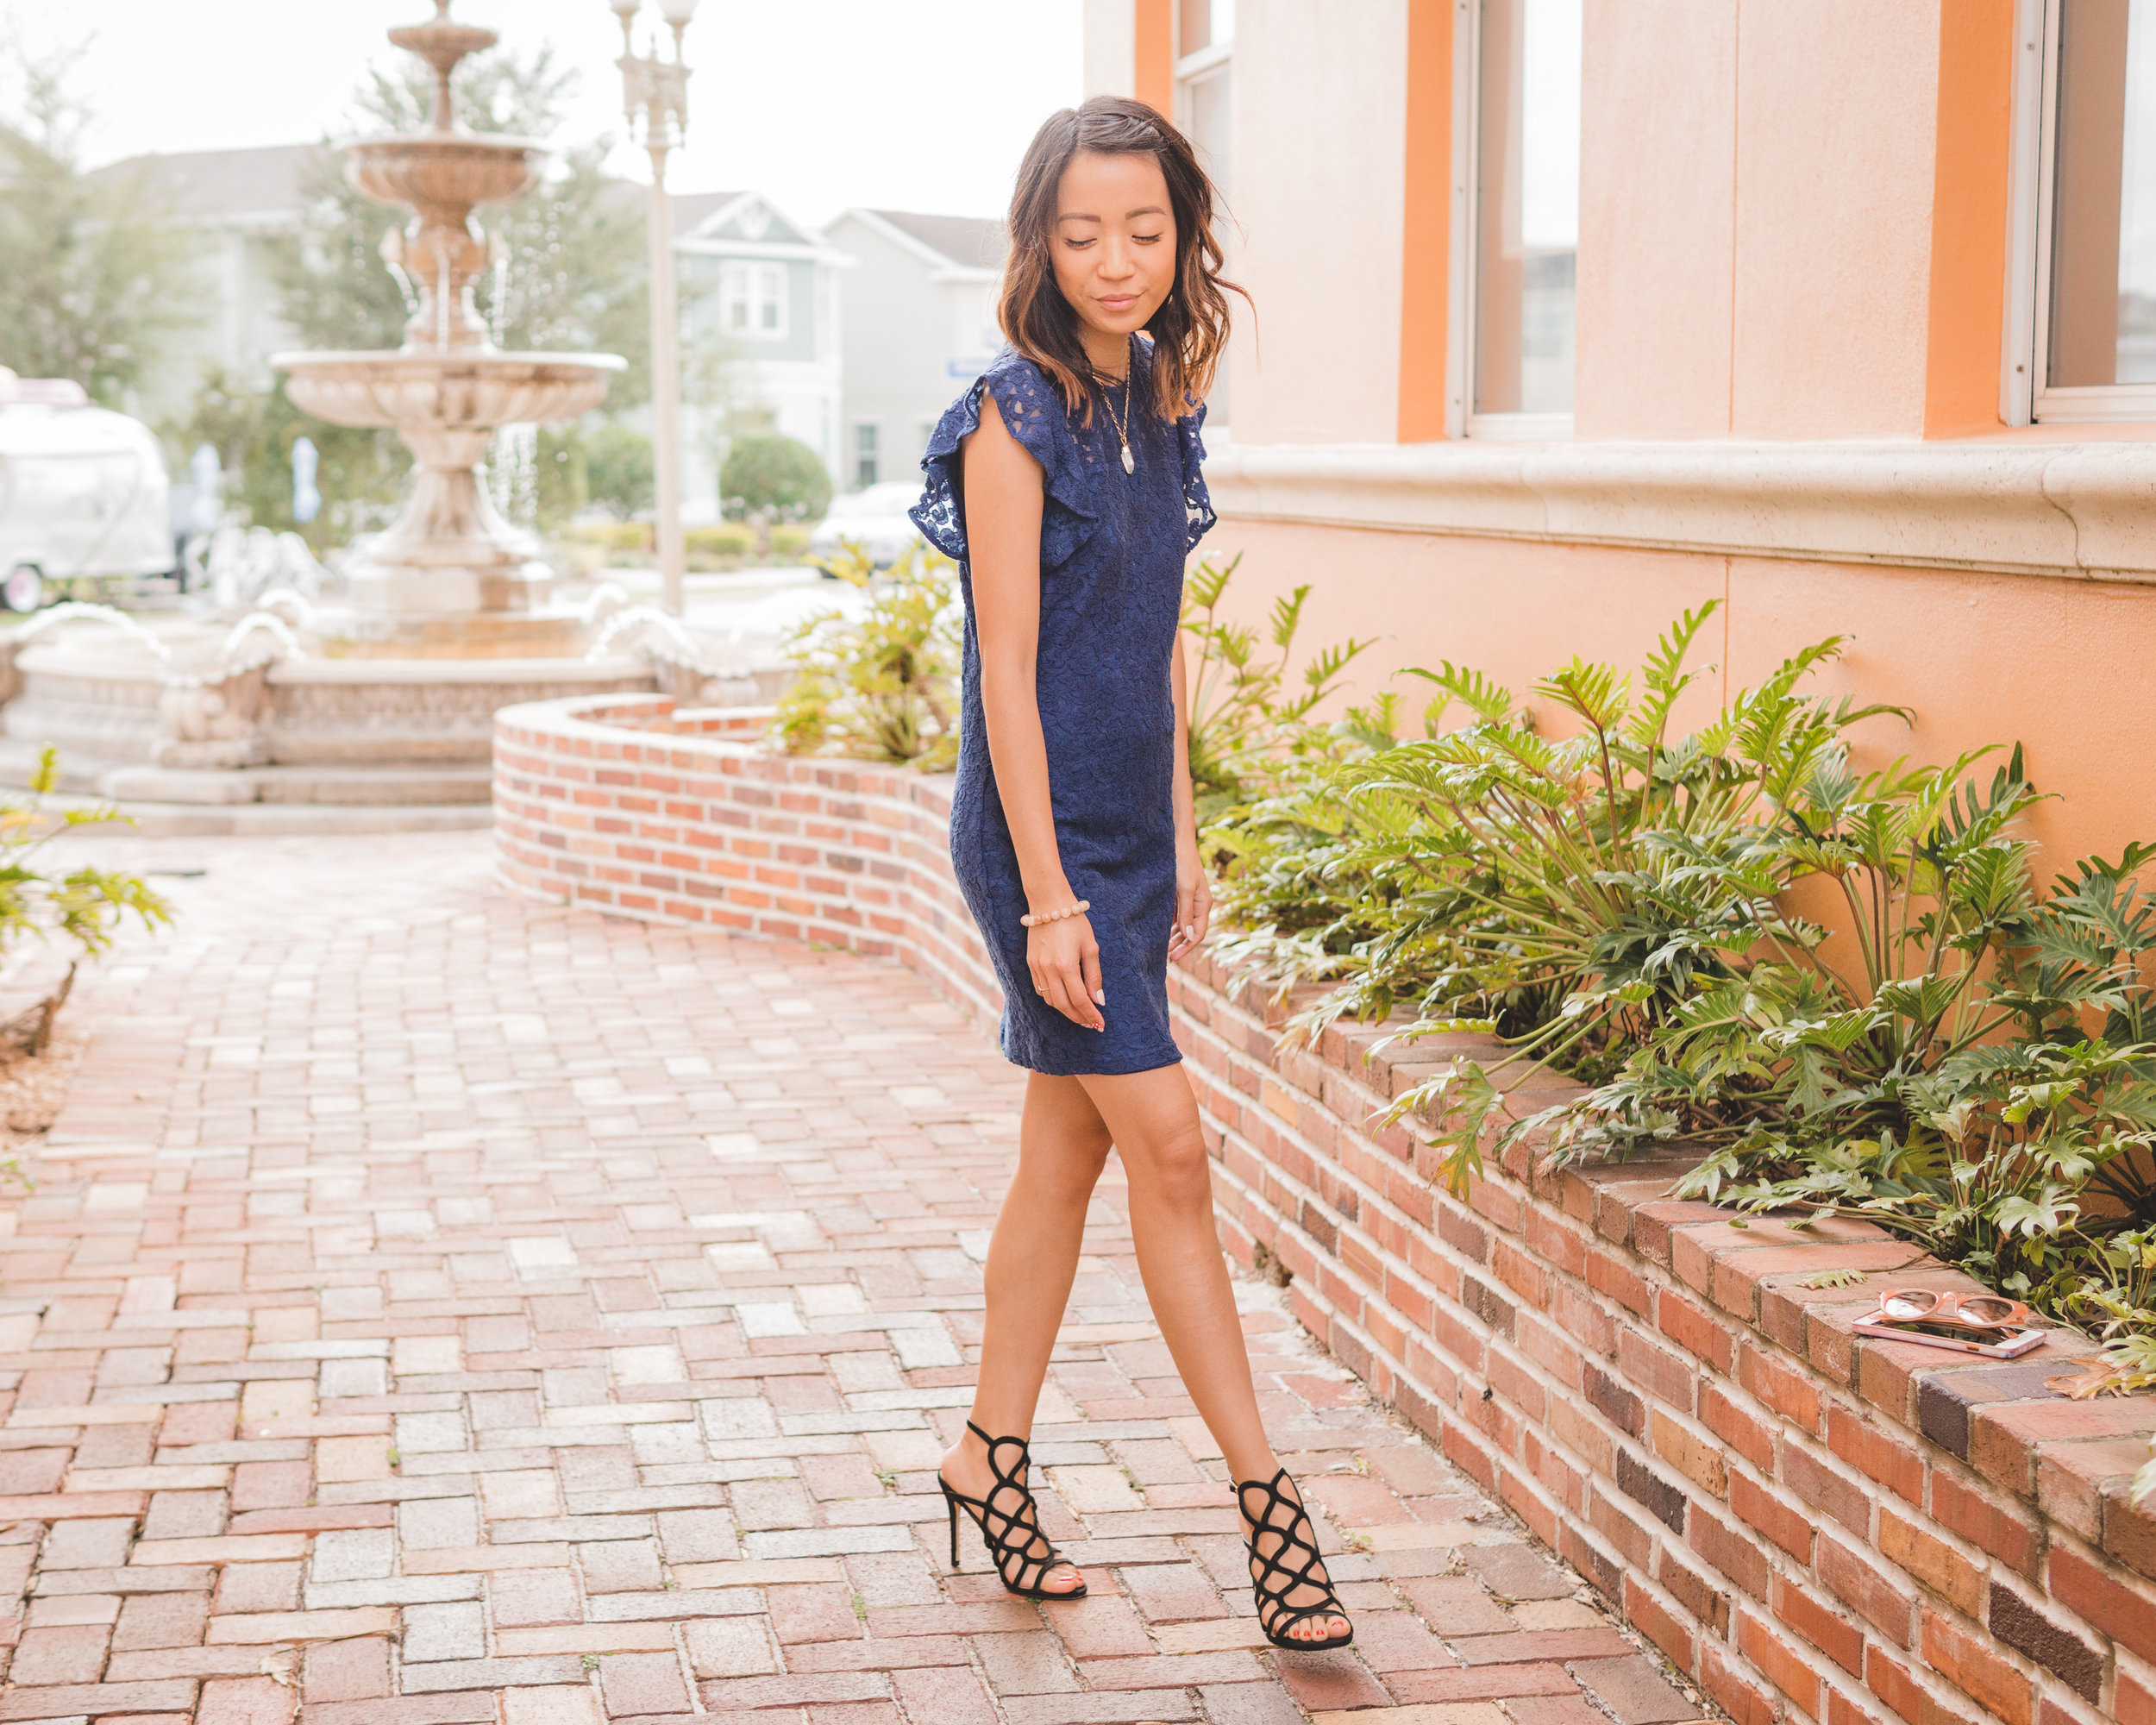 This Jenn Girl - Tampa Blogger - Navy Blue Dress & Cage Heel 3